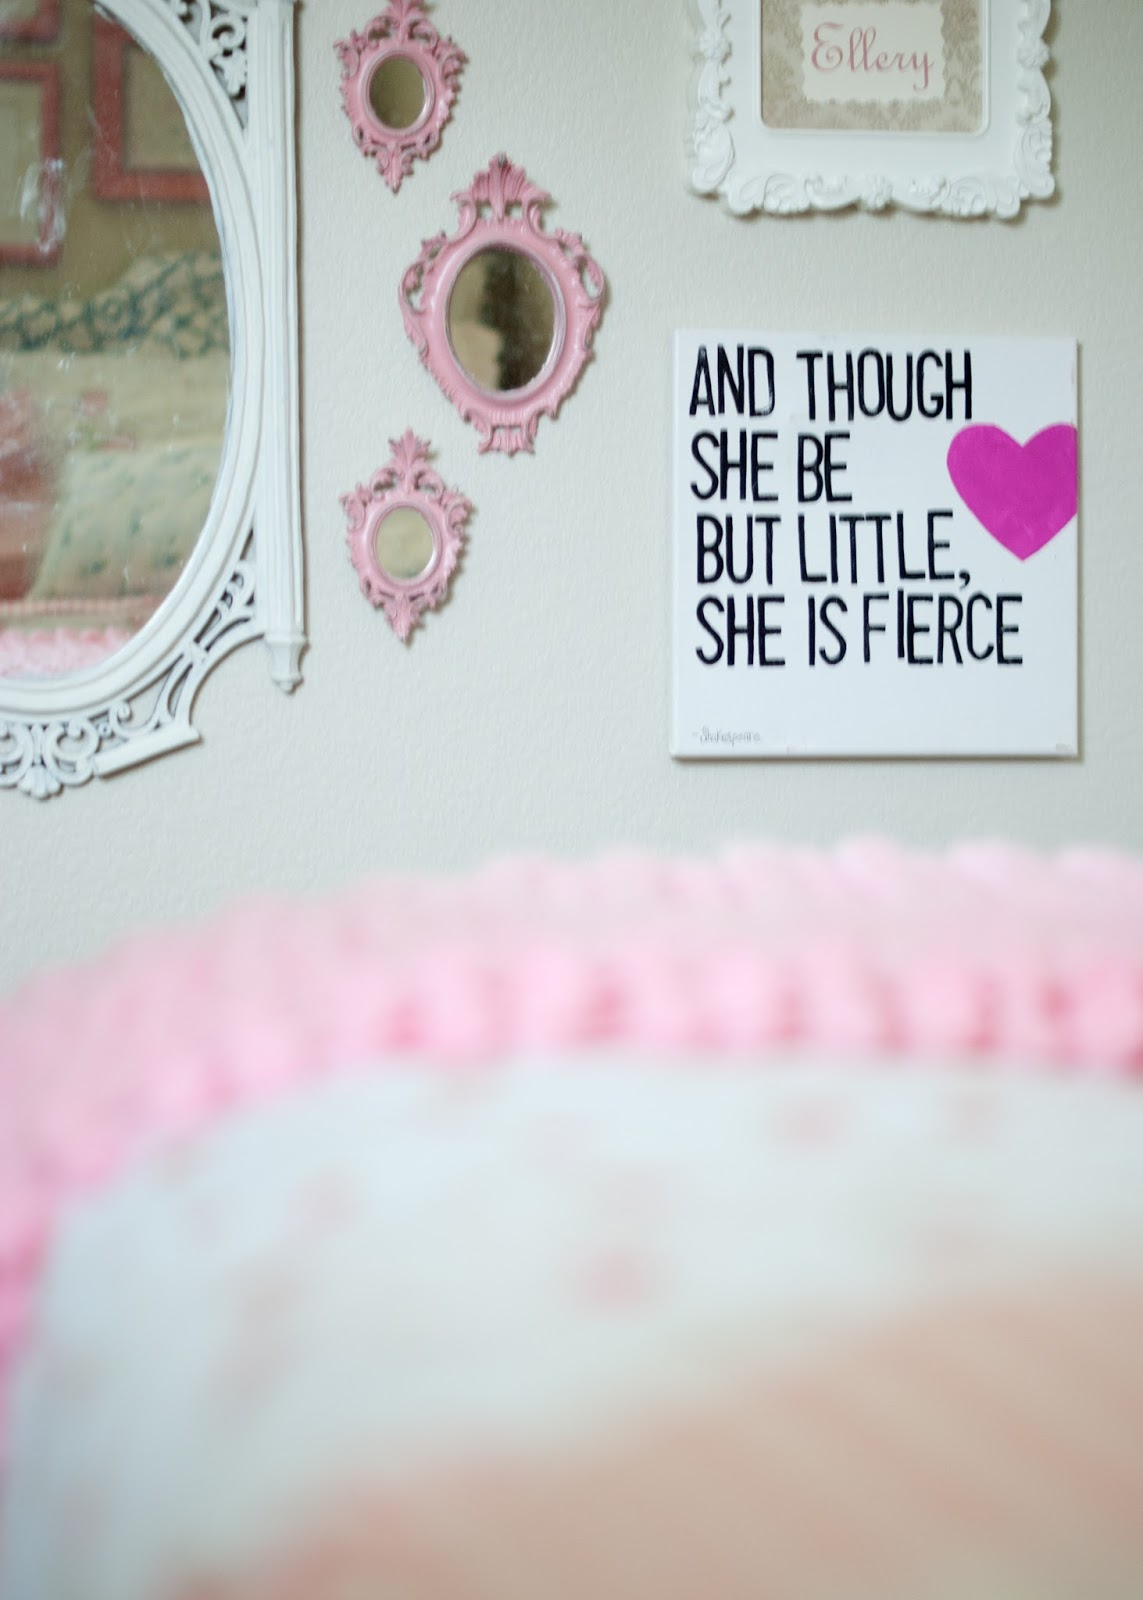 "Gallery wall- vintage mirrors and quote ""though she be but little she is fierce"